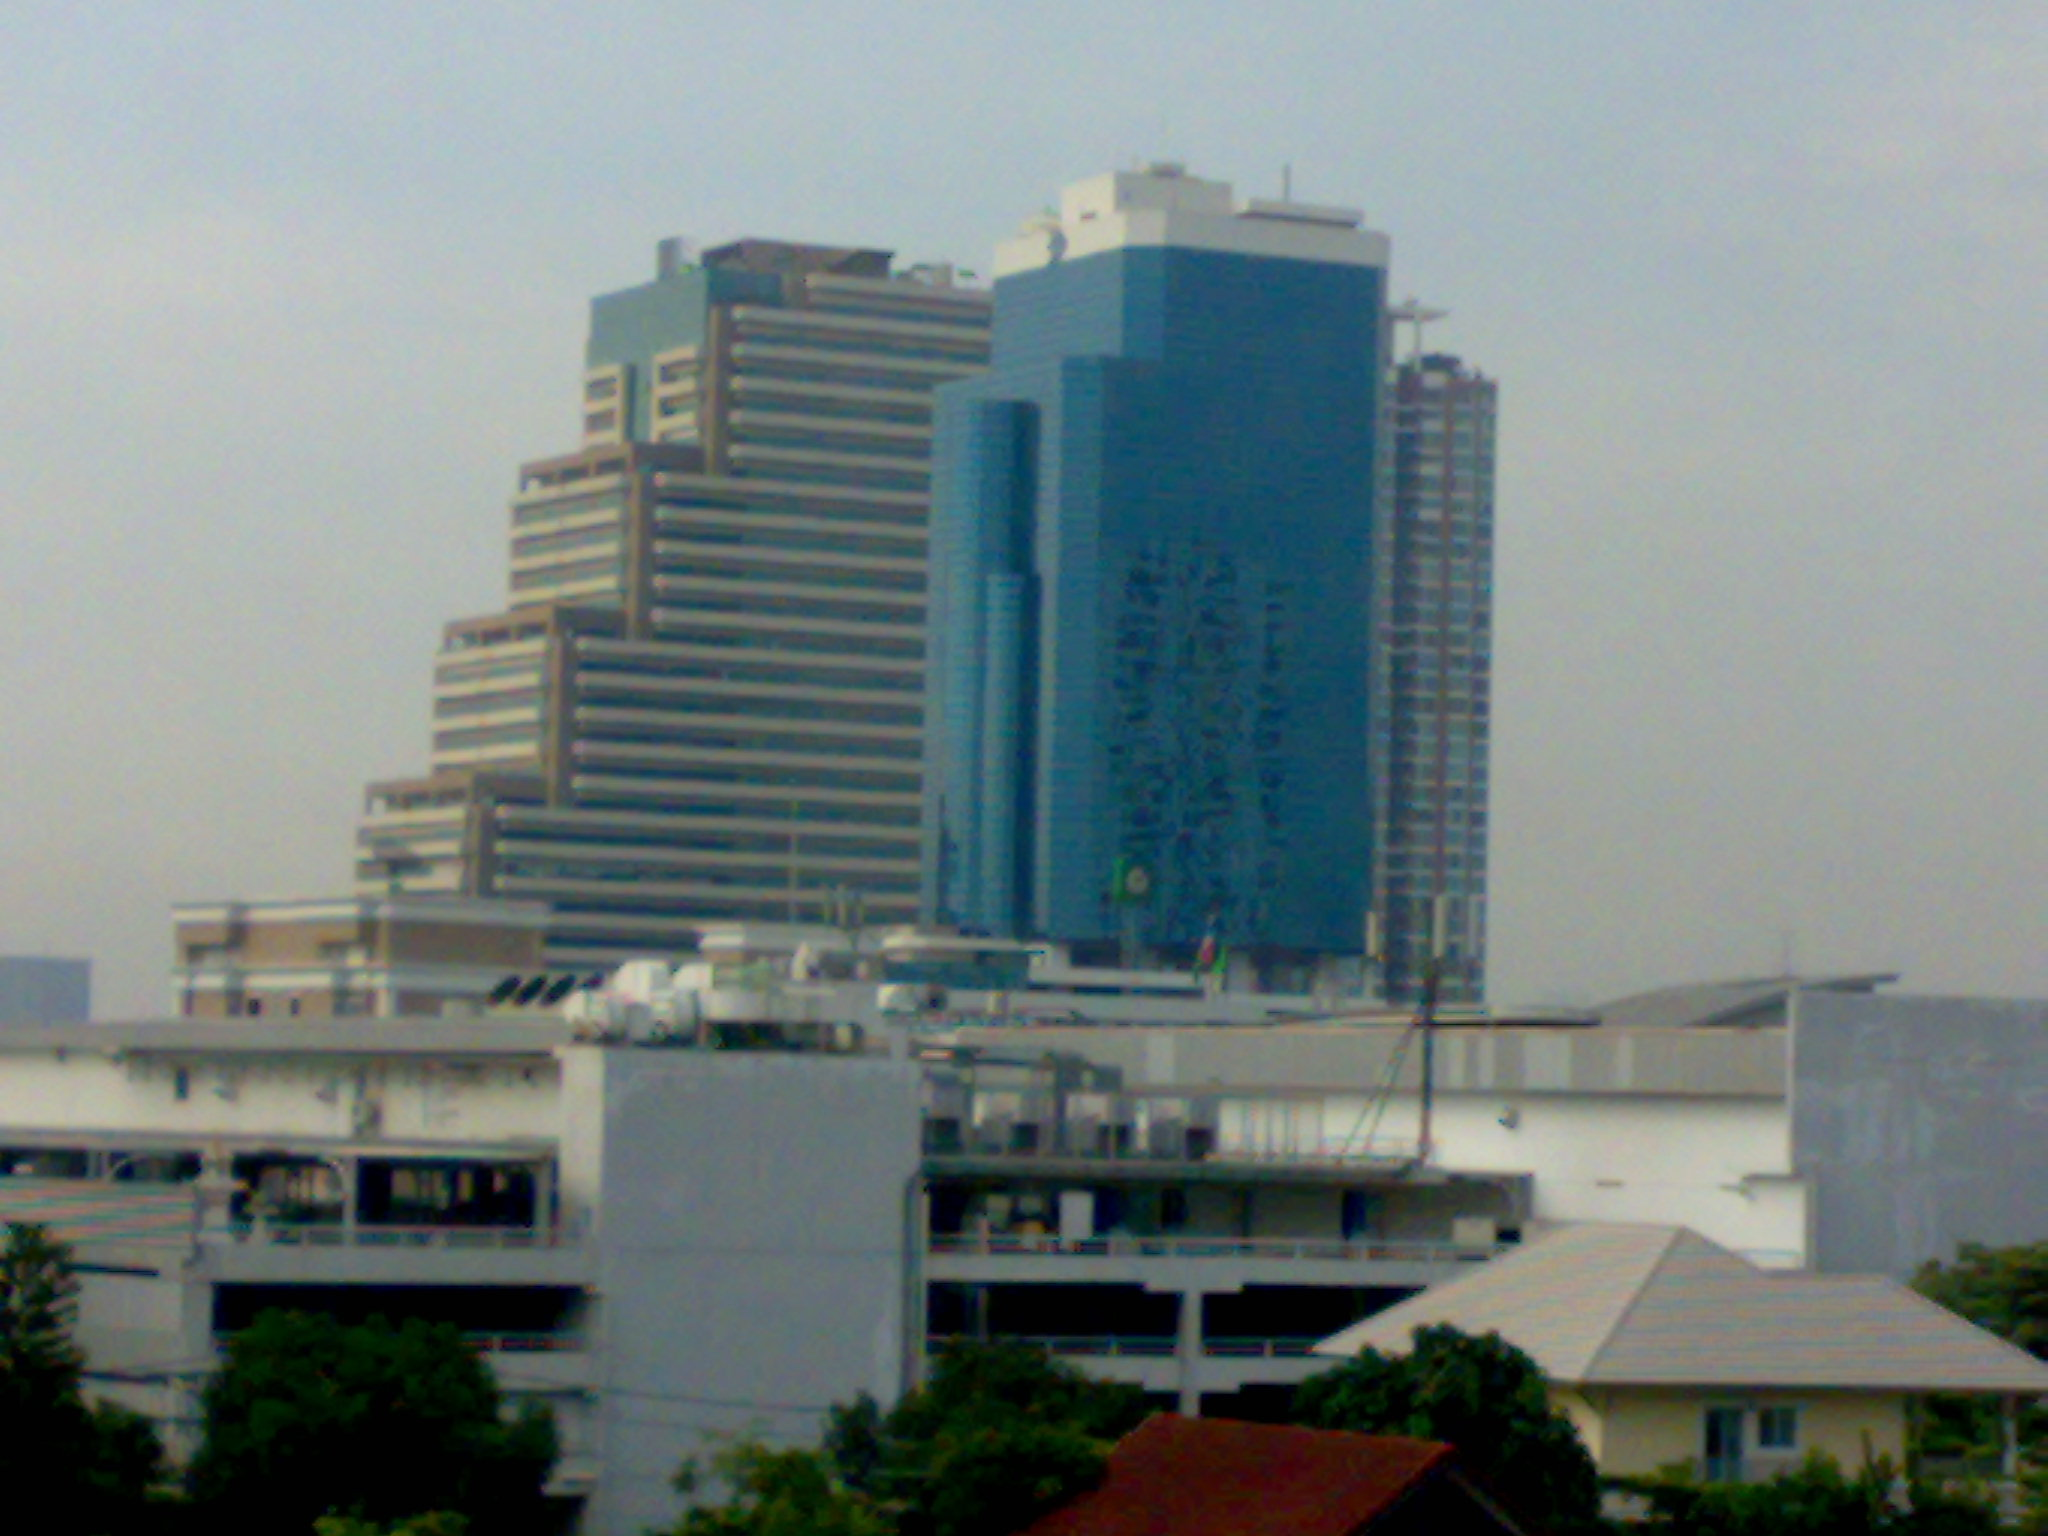 Bangkok Business Center: The 15th floor of the blue building